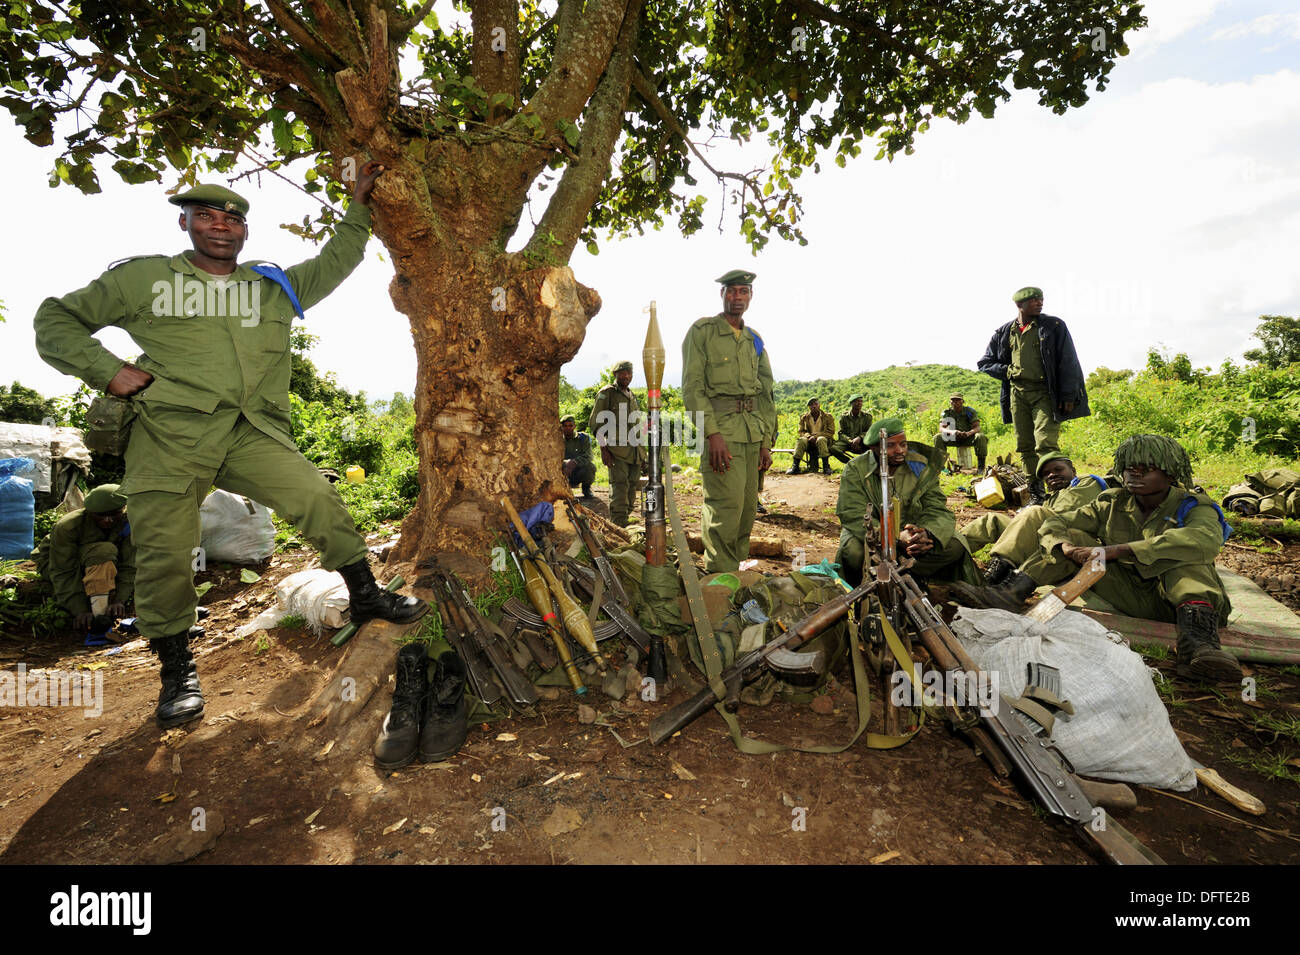 Soldiers from the Congo Army in north Kivu, Democratic republic of Congo, Africa - Stock Image